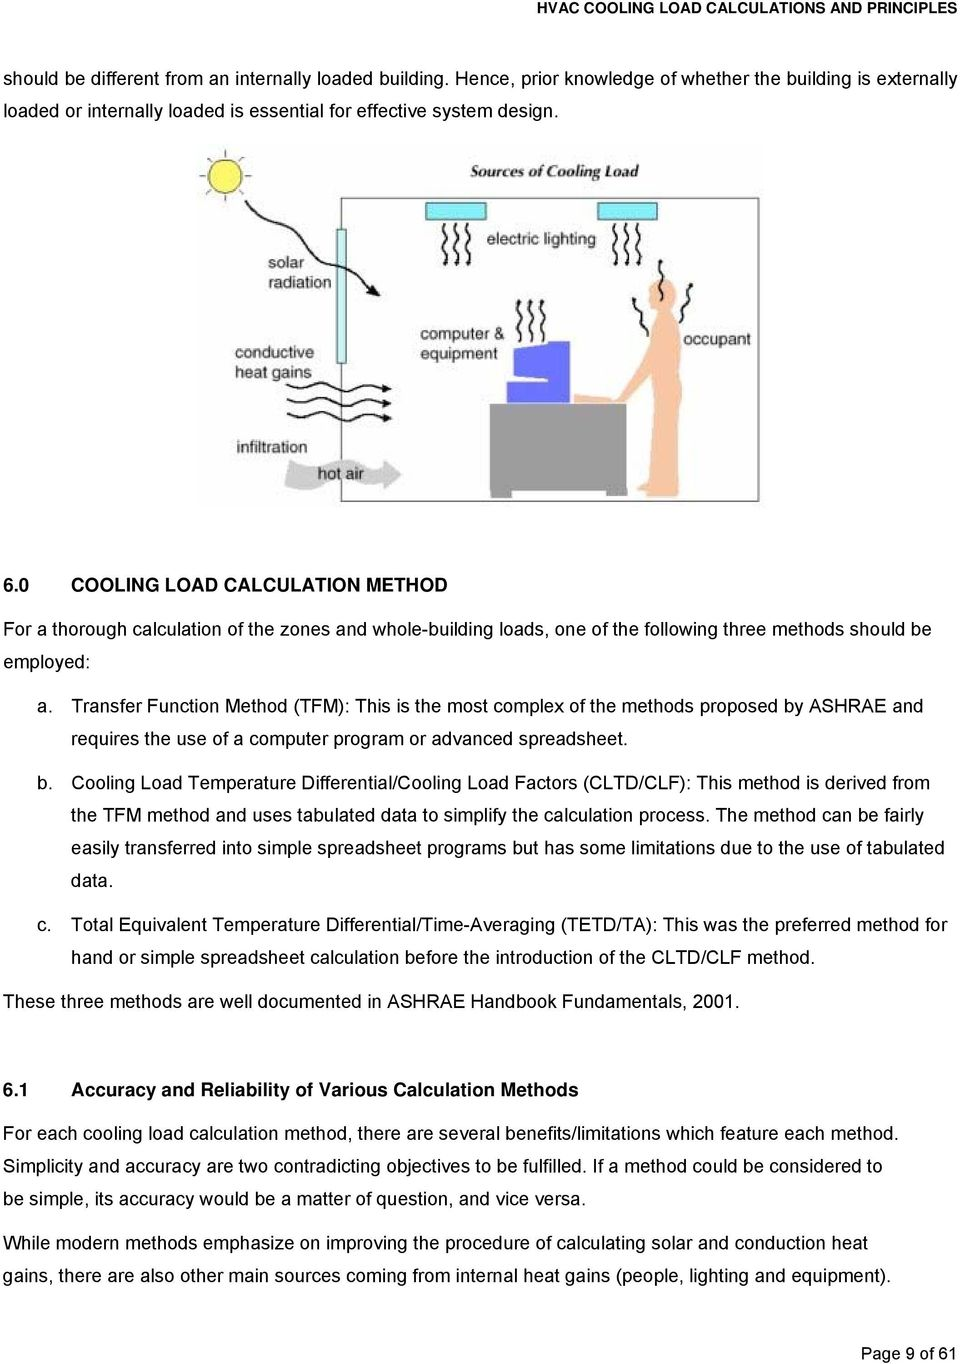 Cooling Load Calculations and Principles - PDF